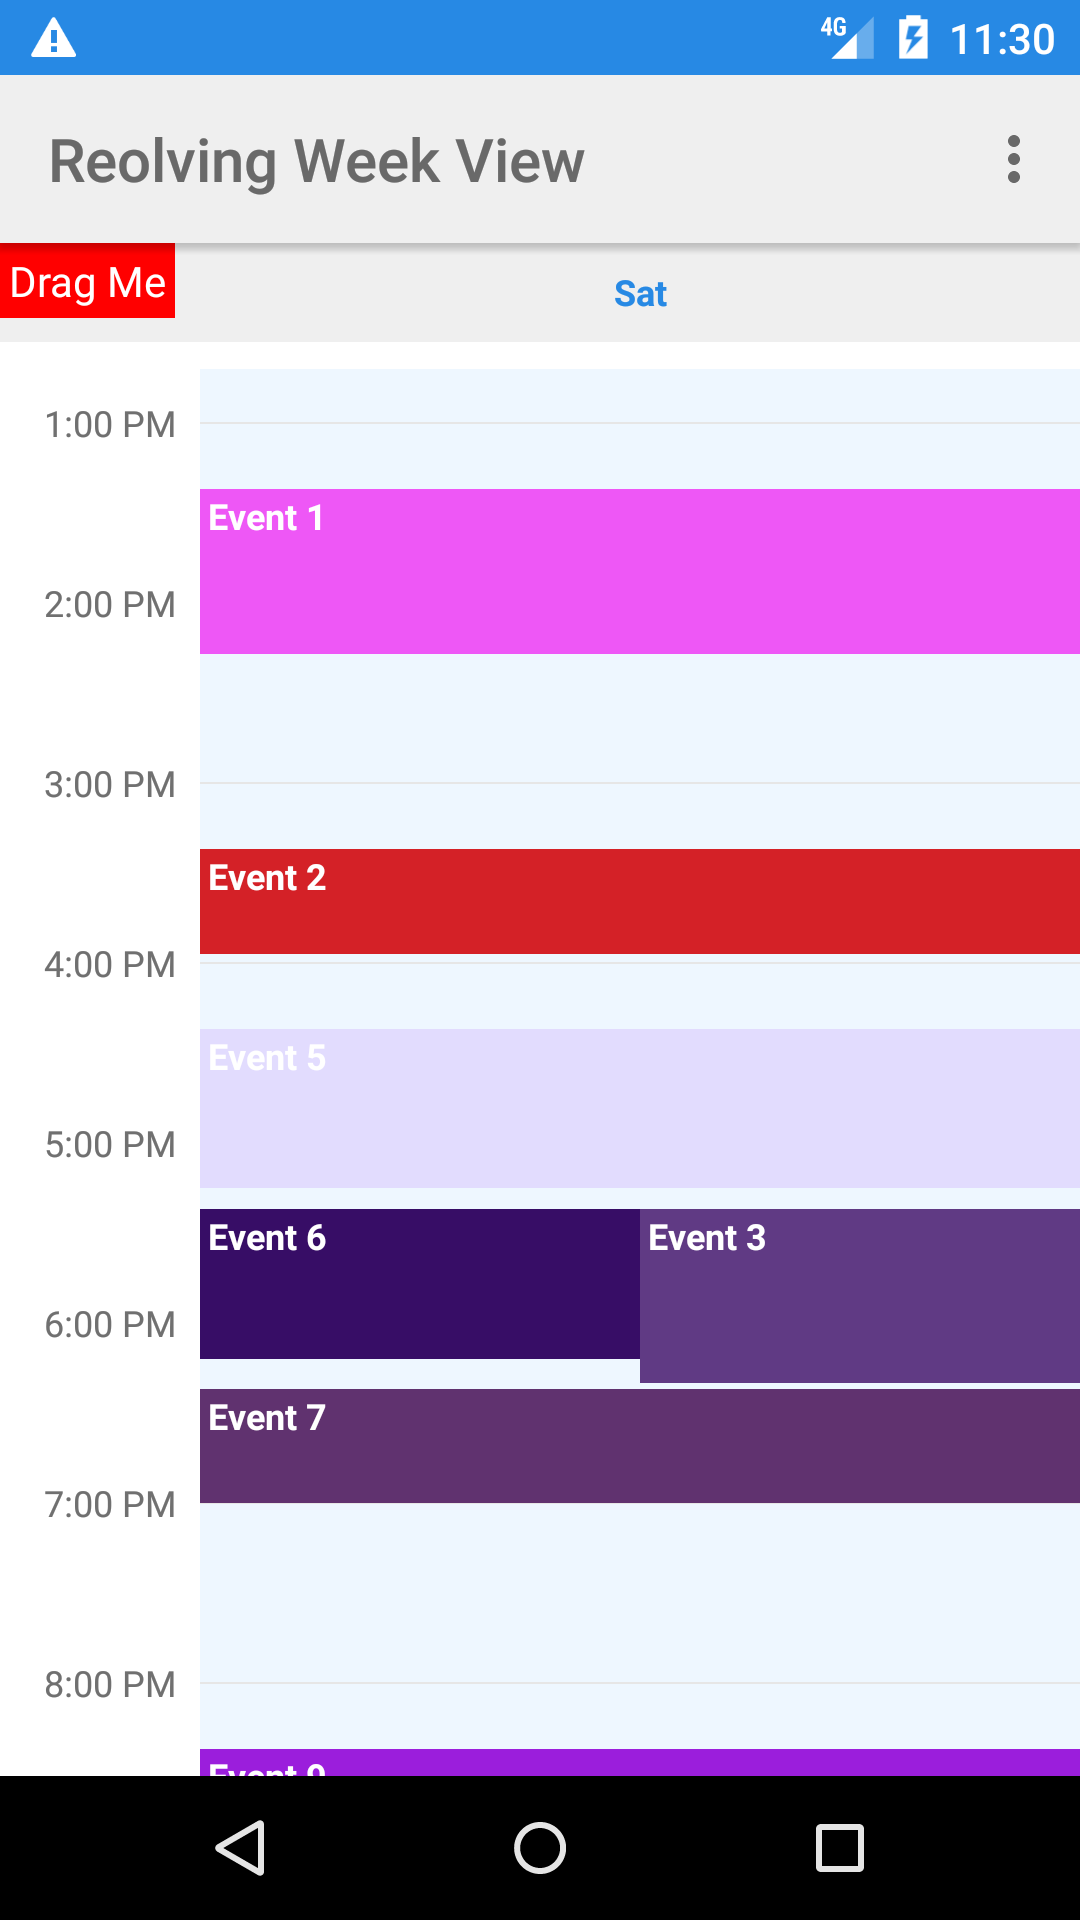 GitHub - jlurena/revolvingweekview: An Android Widget with a